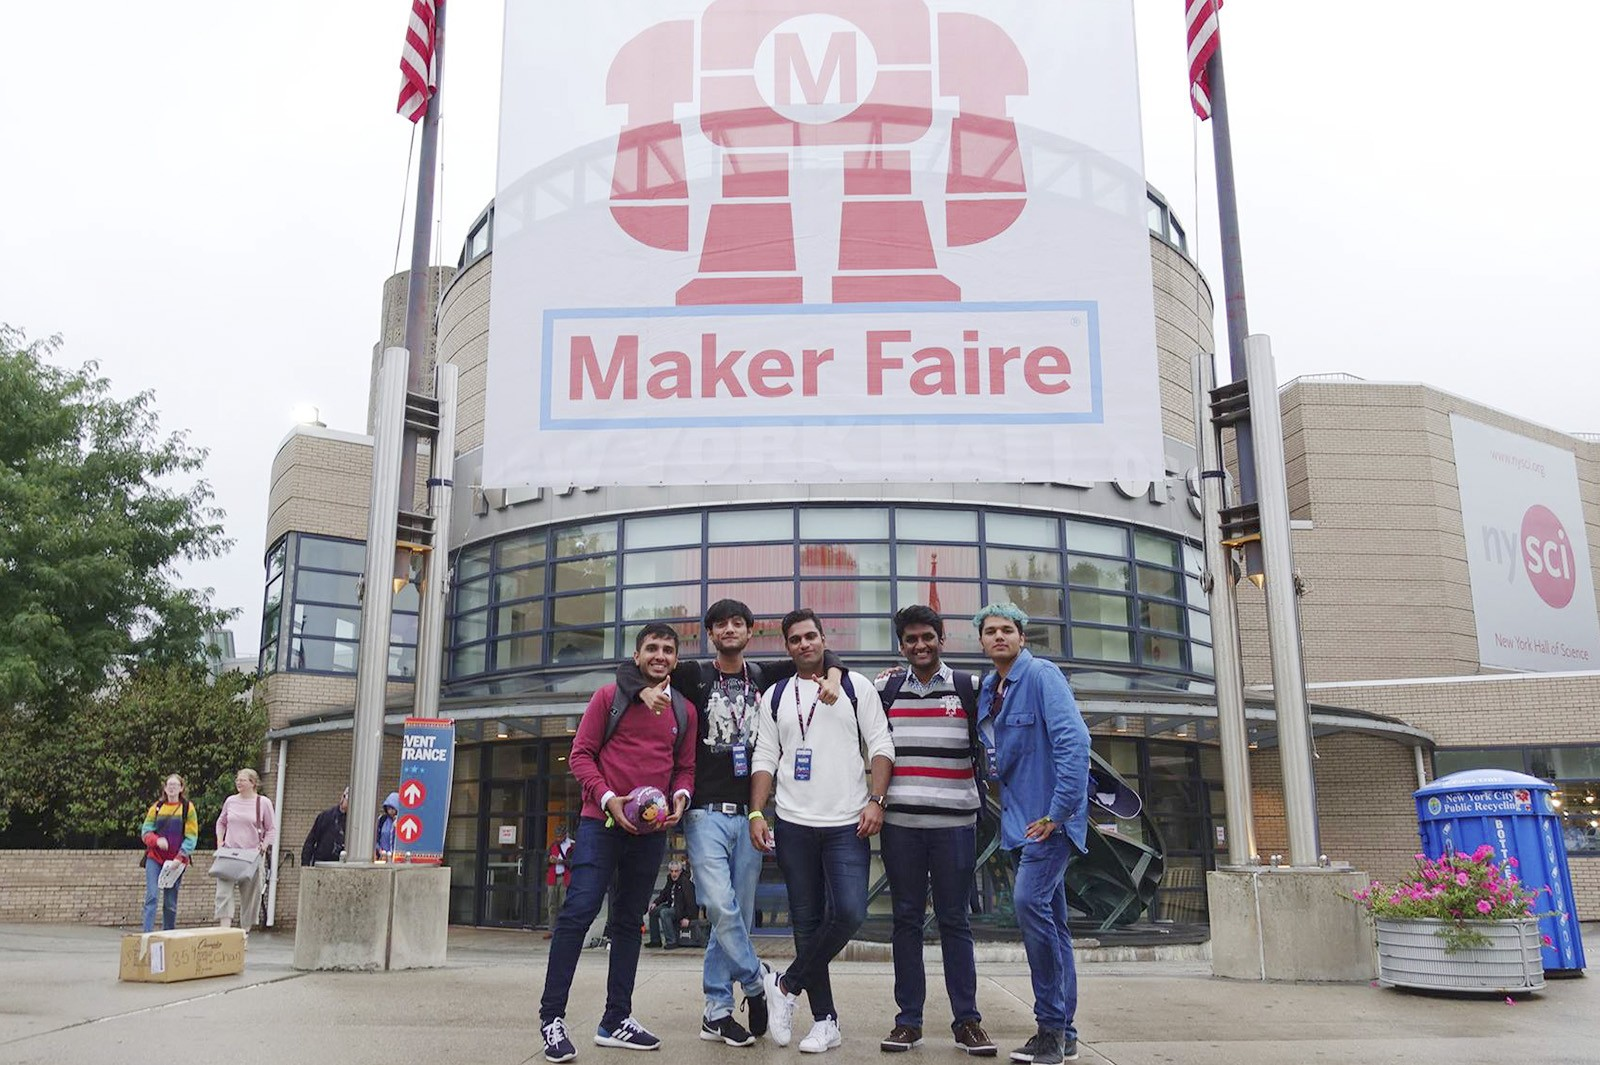 The team took part in the World Maker Faire in New York to showcase their application that aids bowling athletes with visual impairment.